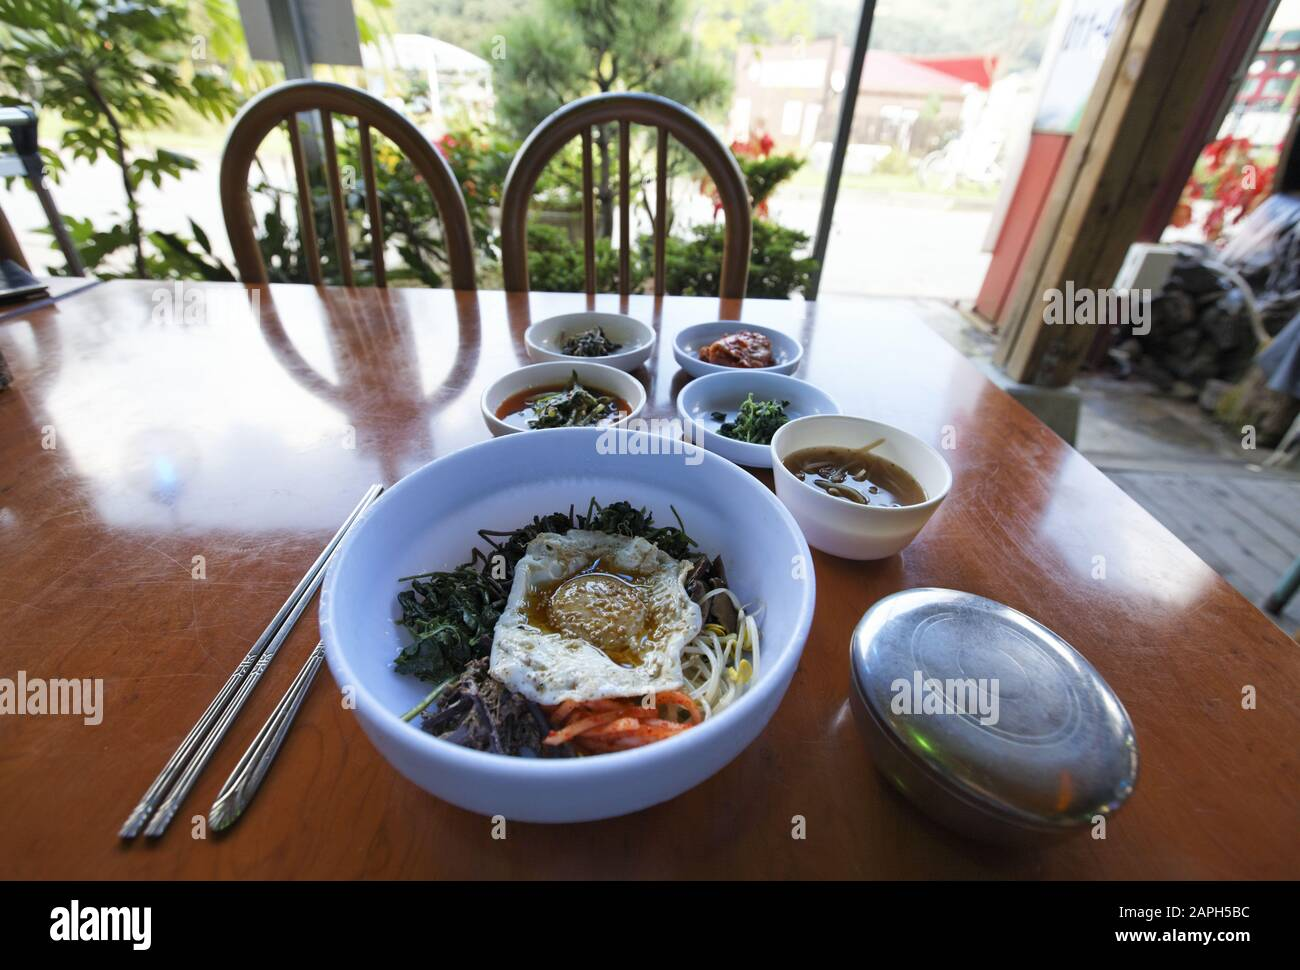 sanchae bibimbap at a local restaurant in Korea Stock Photo